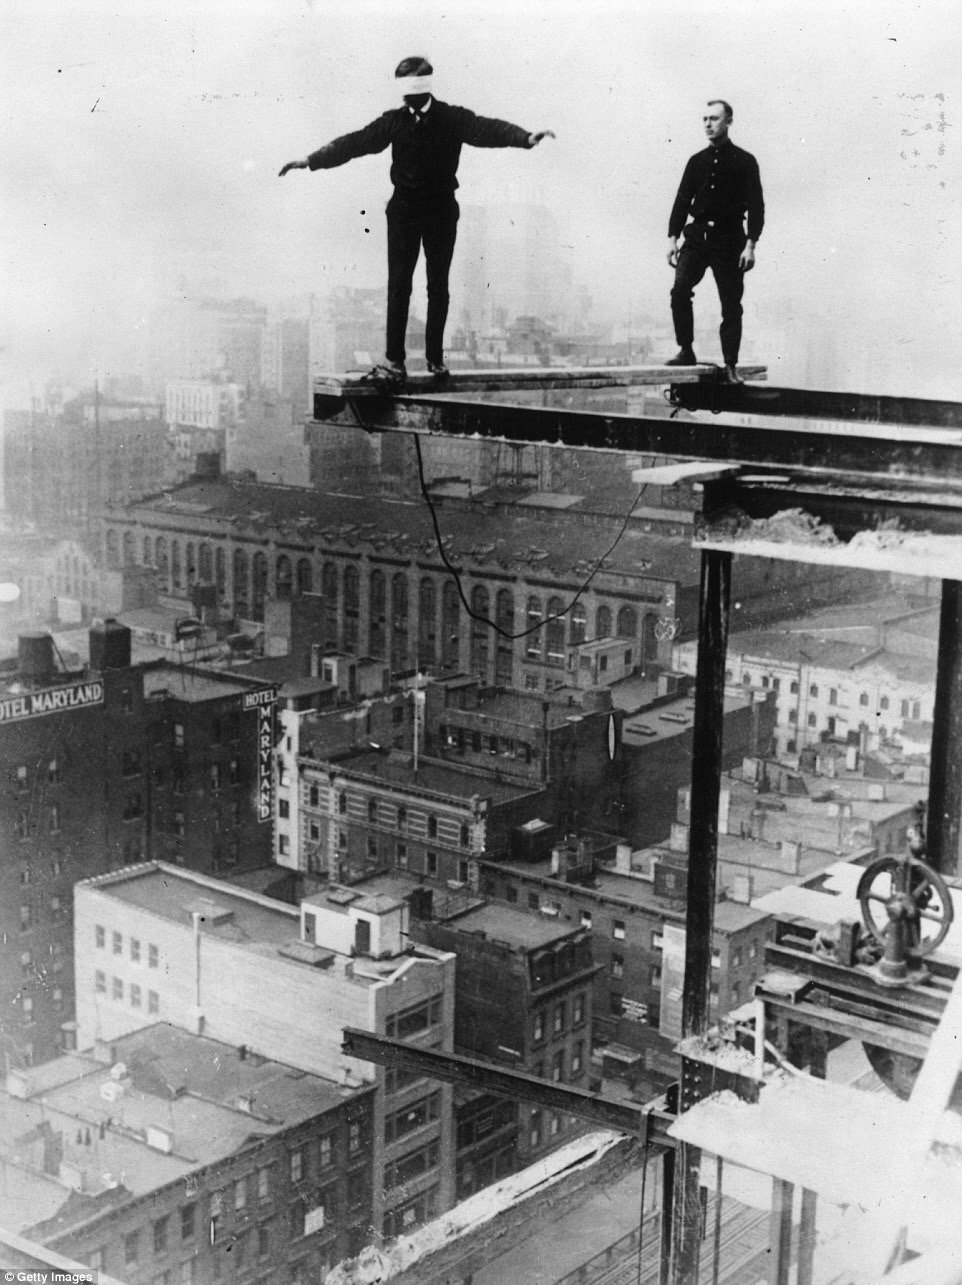 TRESTLES - 20 STORIES IN THE AIR, 1925